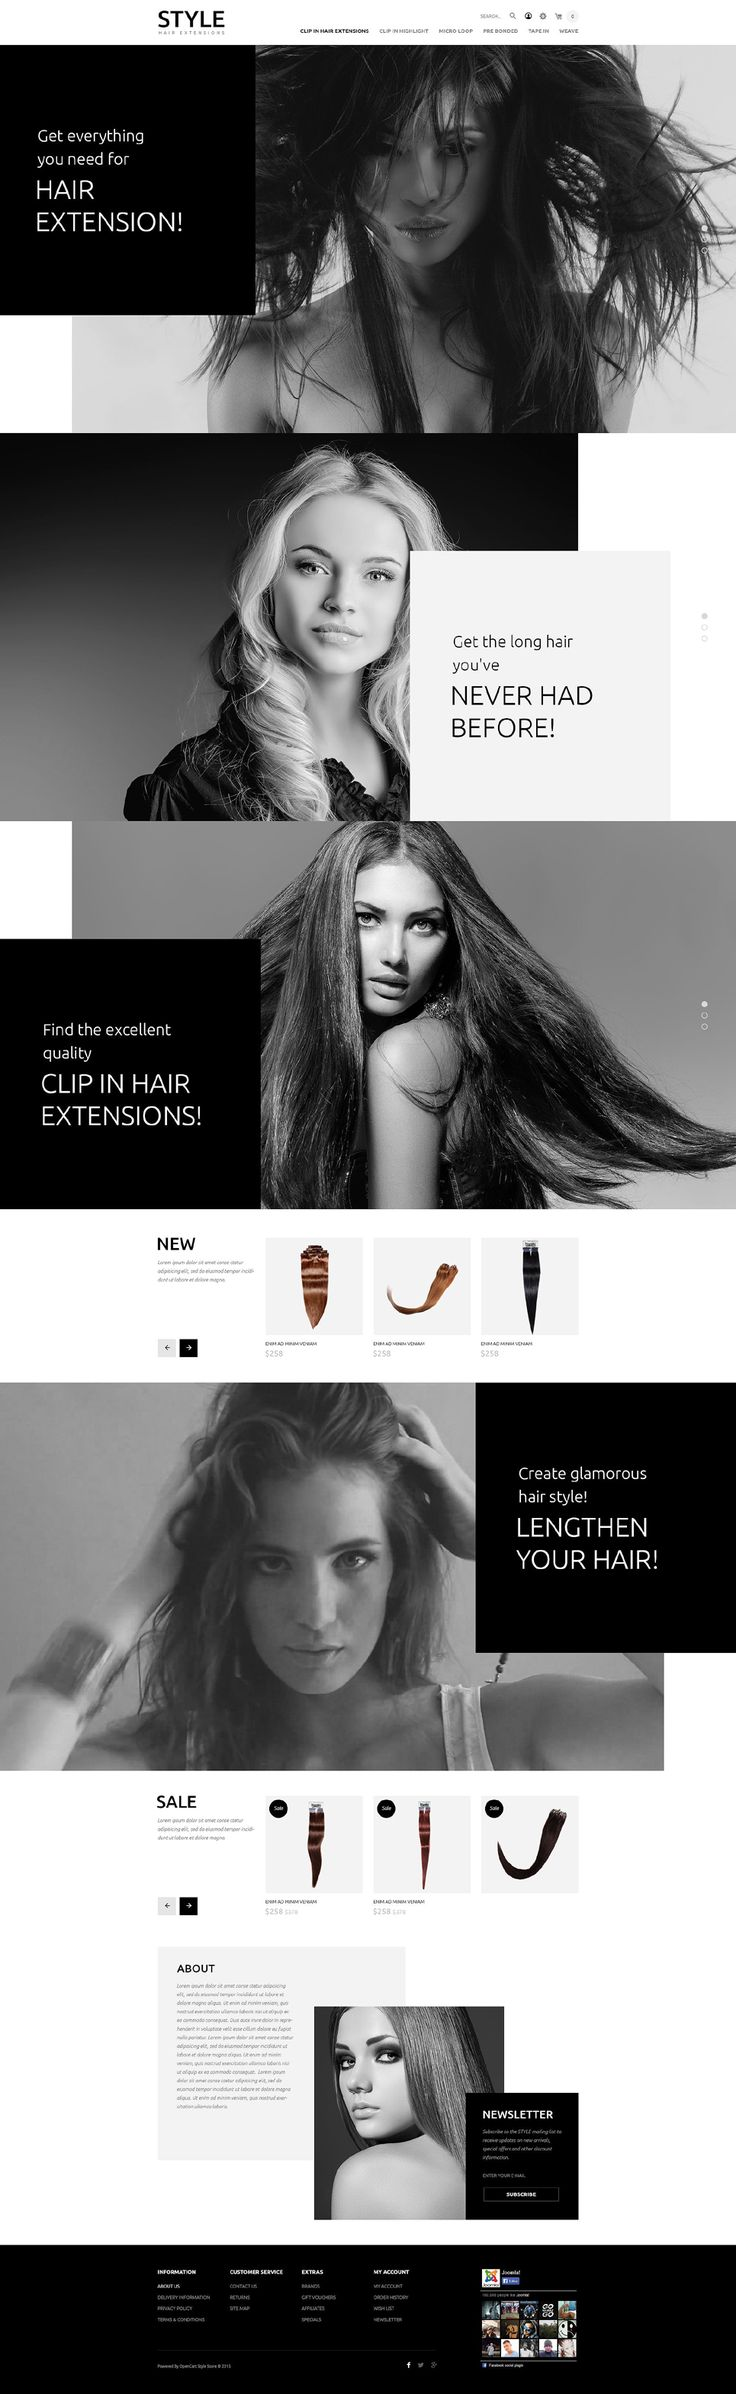 Hair & Beauty Salon OpenCart Template #websitetheme http://www.templatemonster.com/opencart-templates/54746.html?utm_source=pinterest&utm_medium=timeline&utm_campaign=opcsty